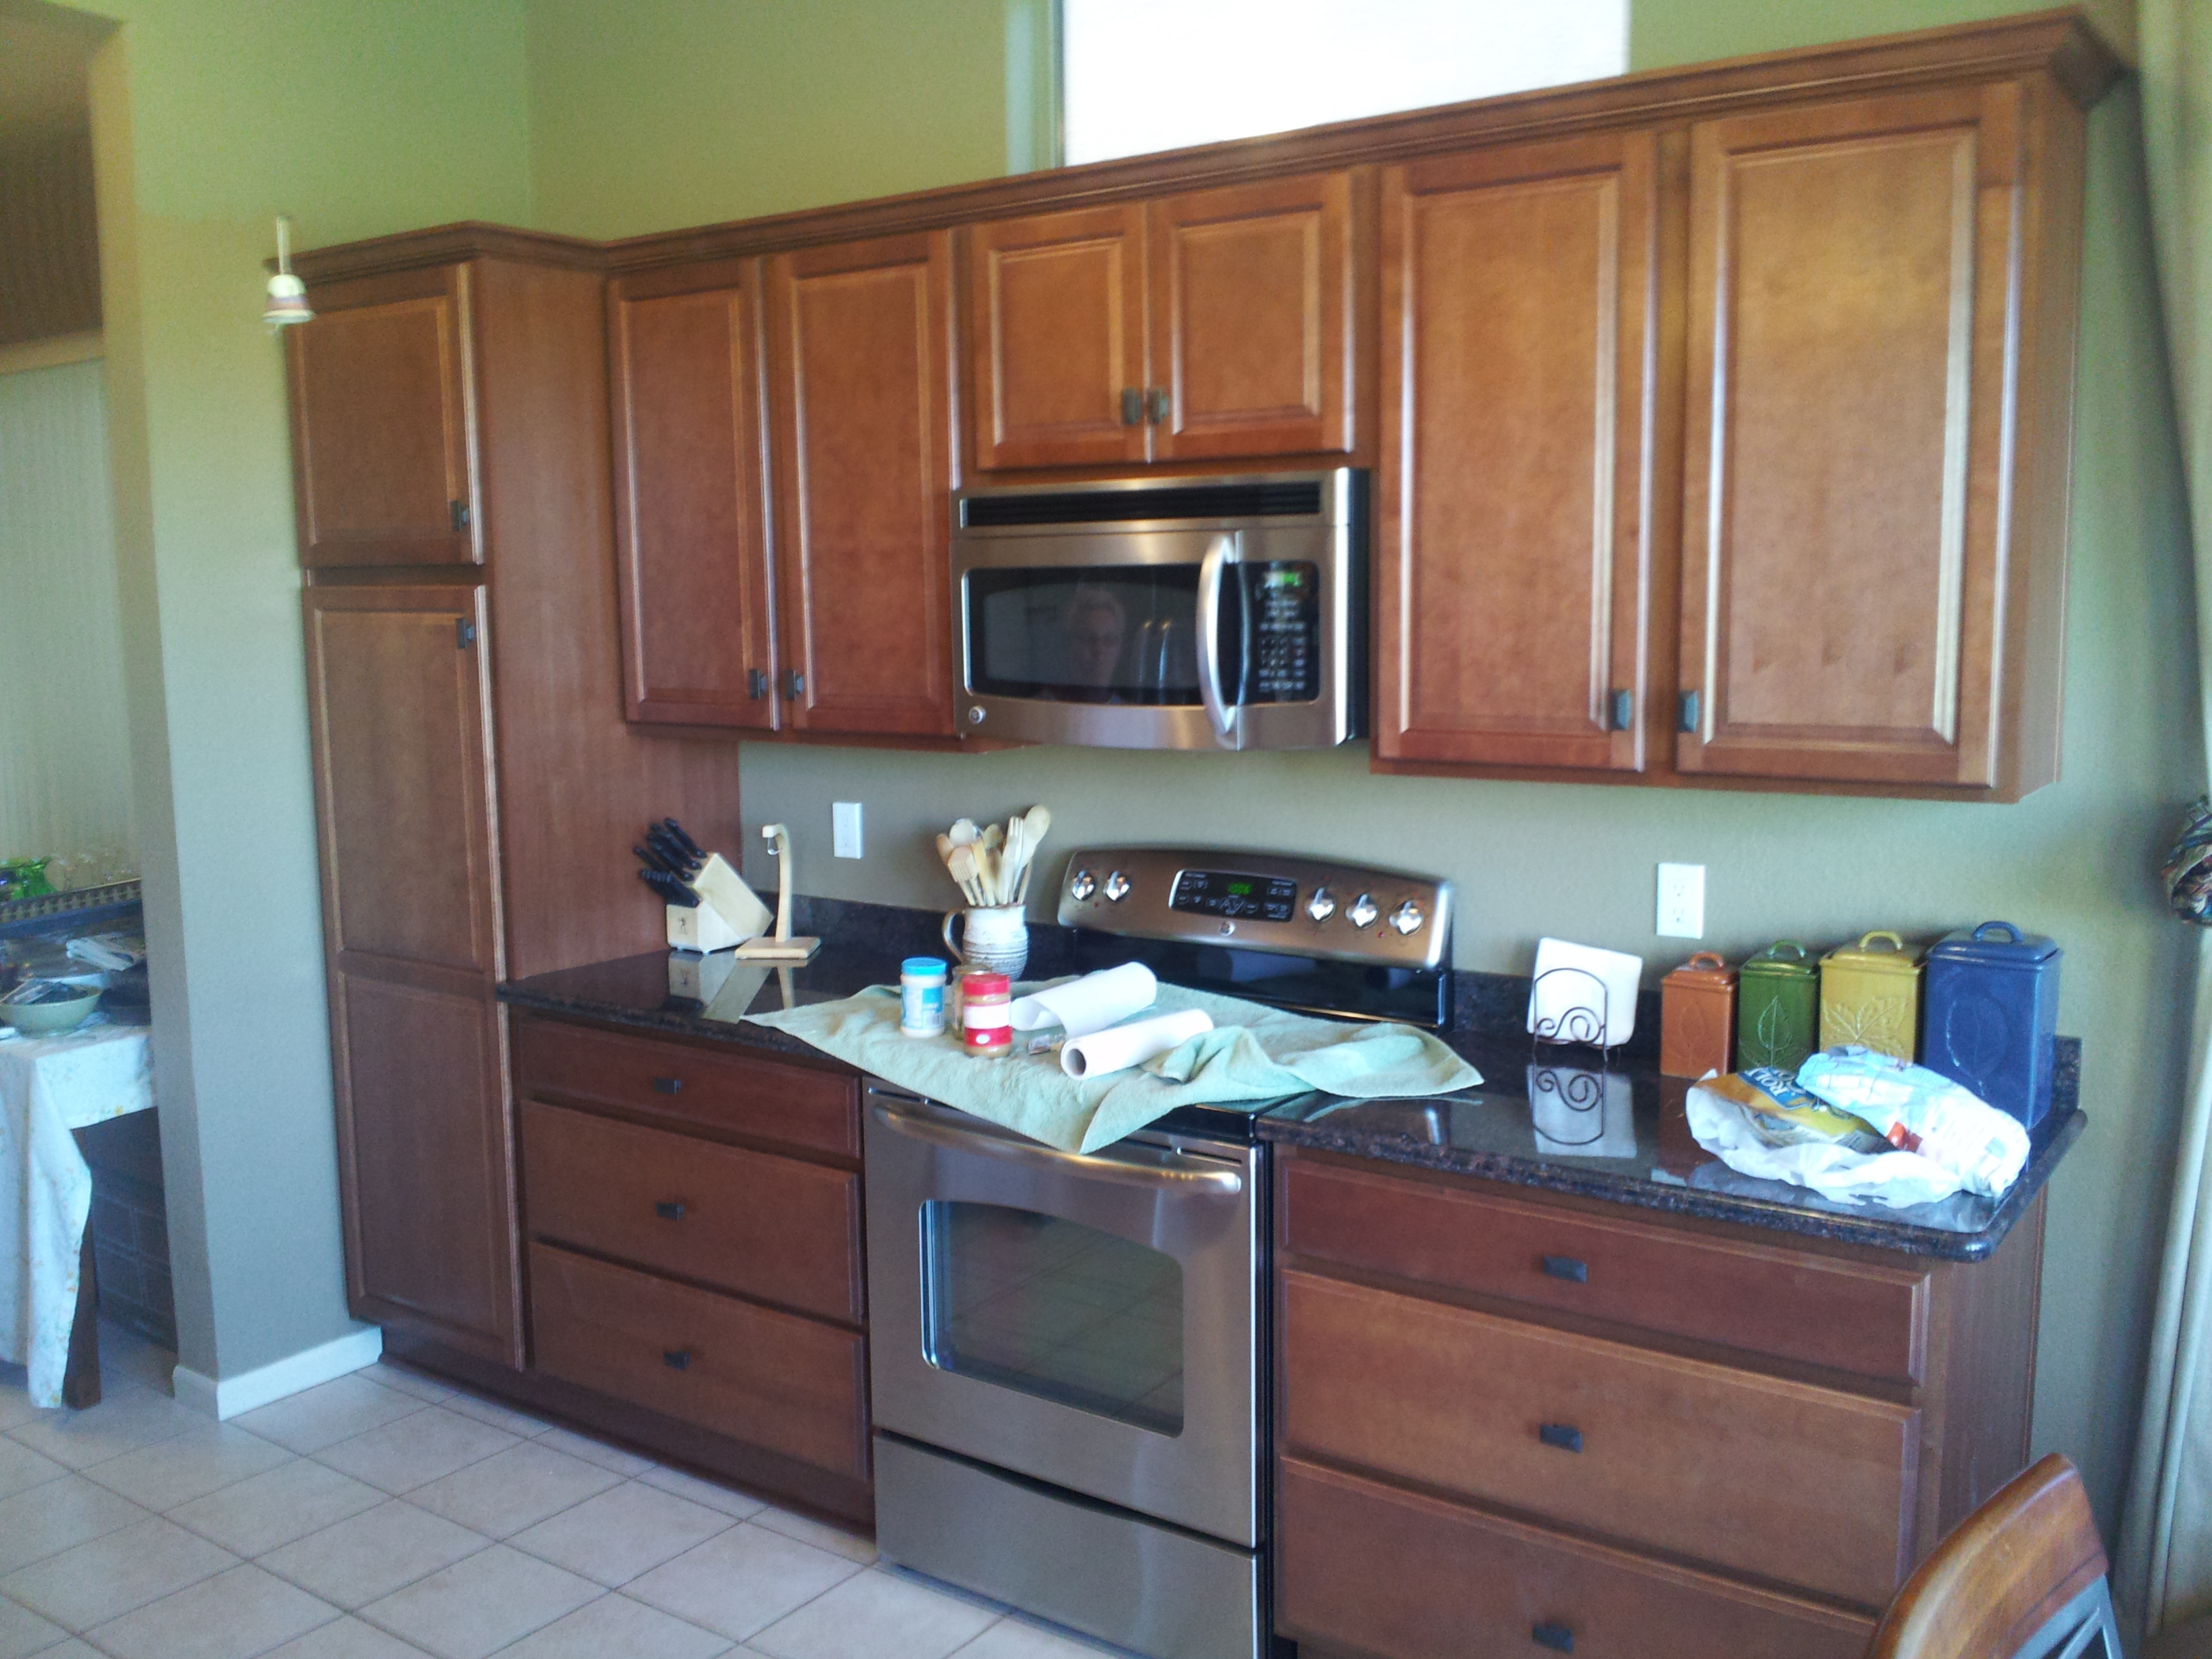 2 kitchen remodel scottsdale Remodeled kitchen Phoenix